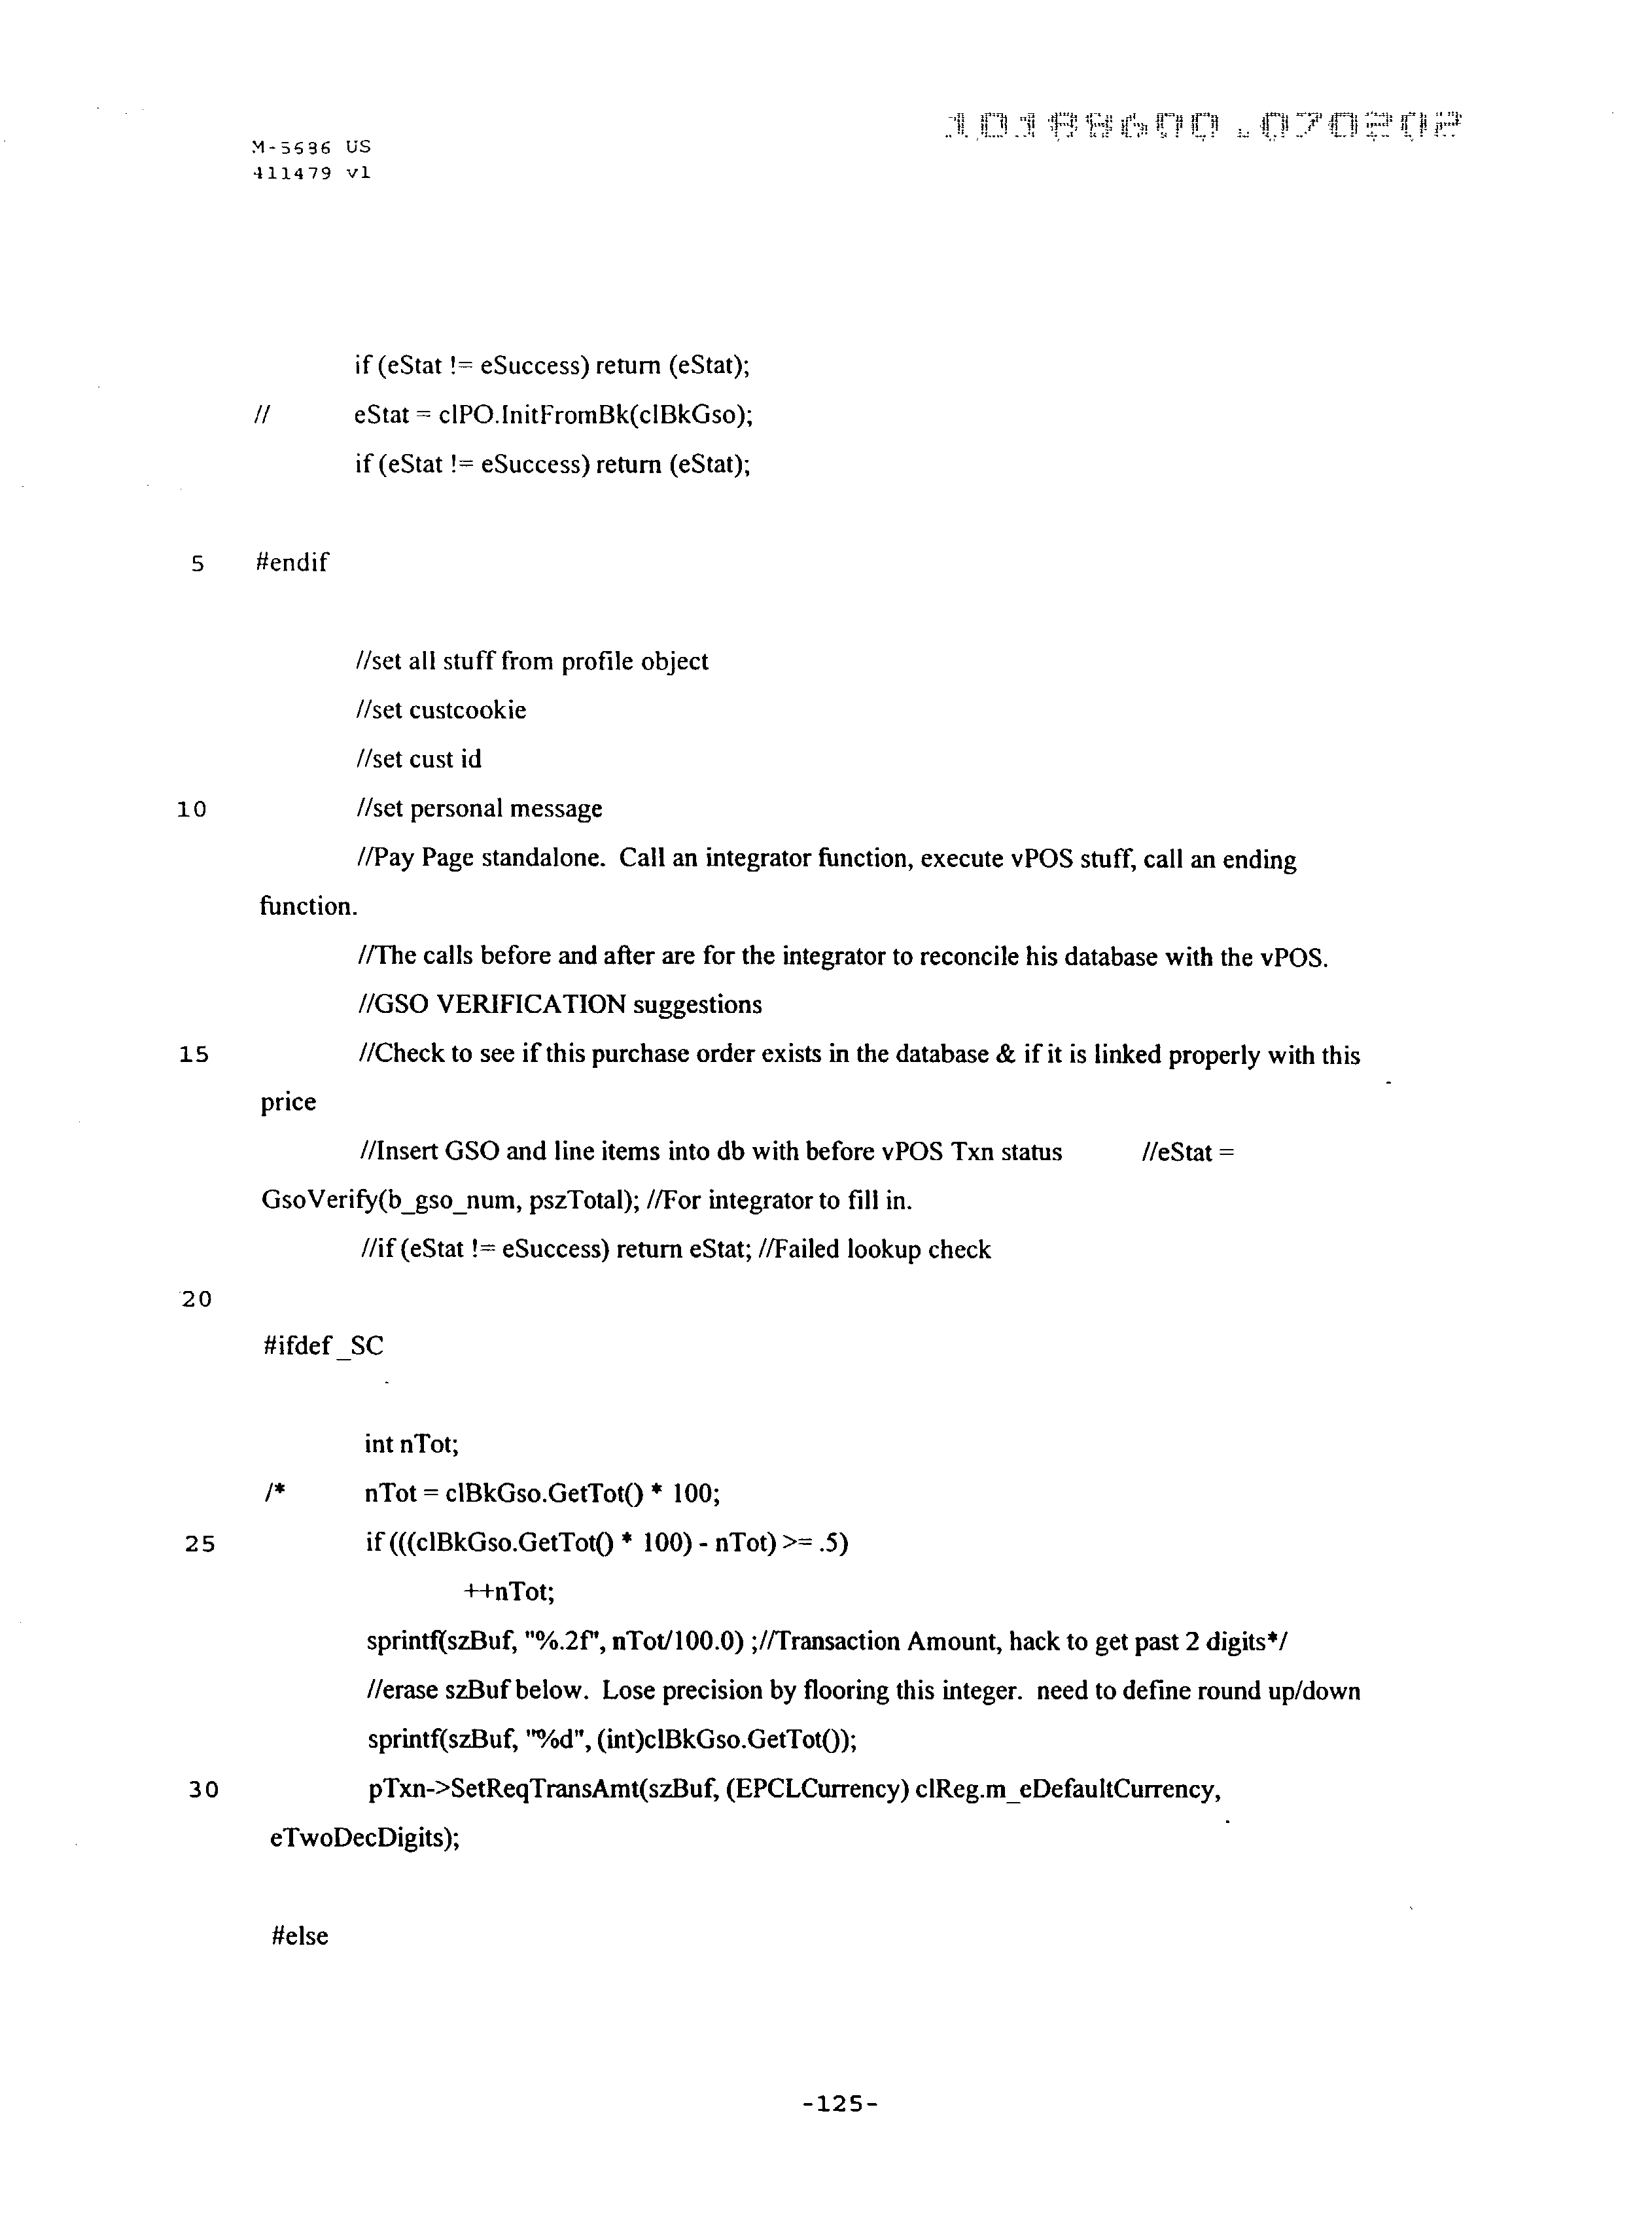 US20030140007A1 - Third party value acquisition for